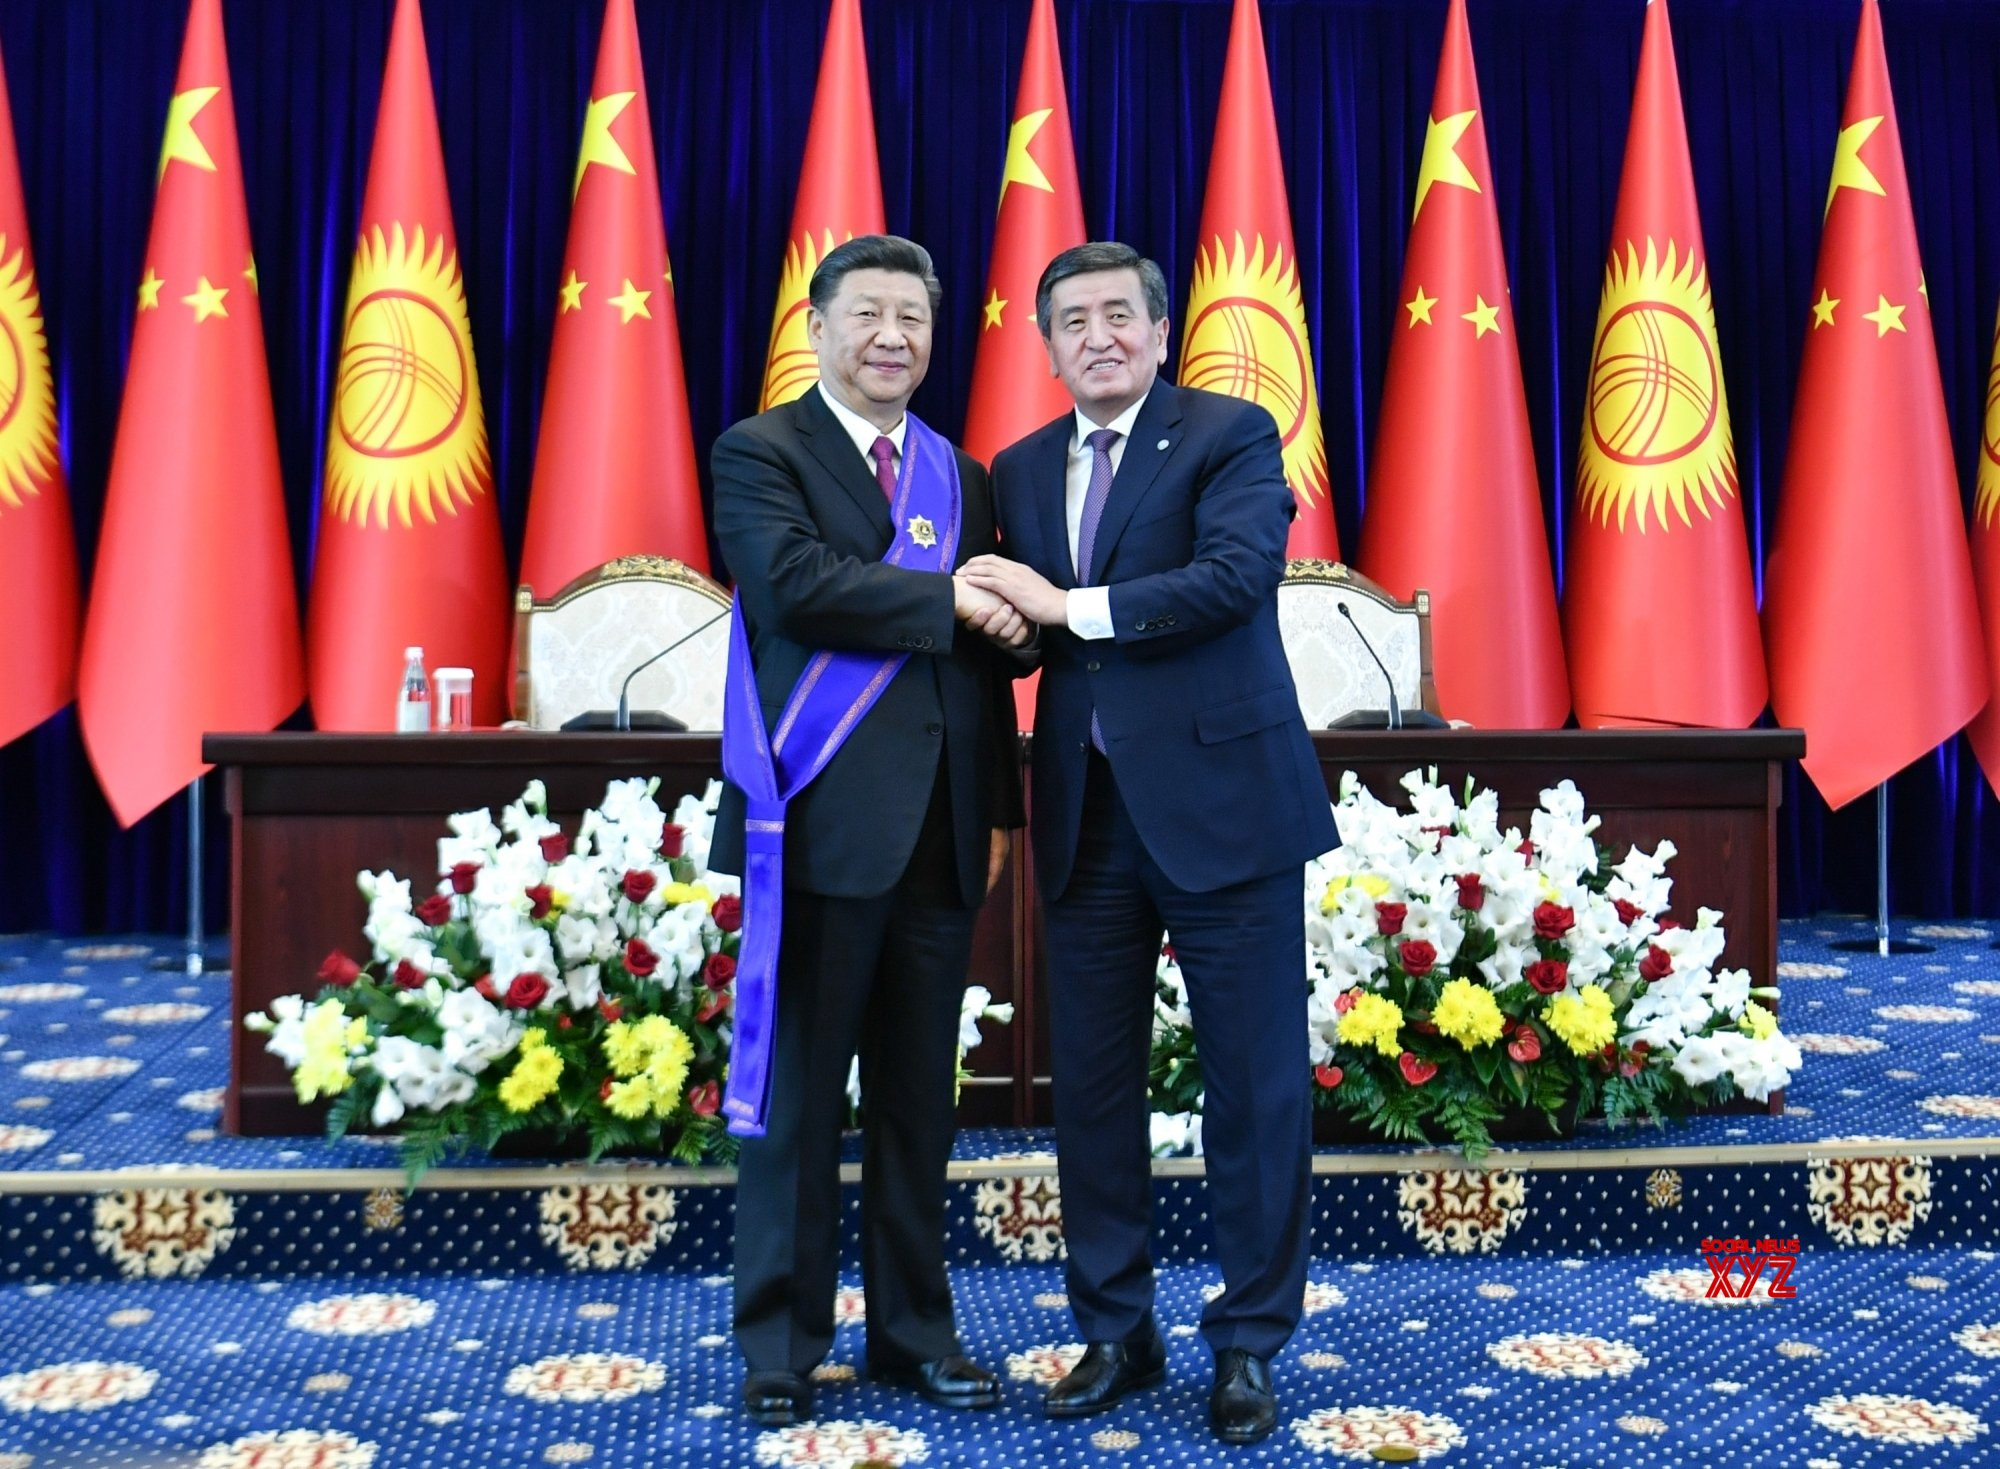 KYRGYZSTAN - BISHKEK - CHINA - XI JINPING - NATIONAL PRIZE #Gallery